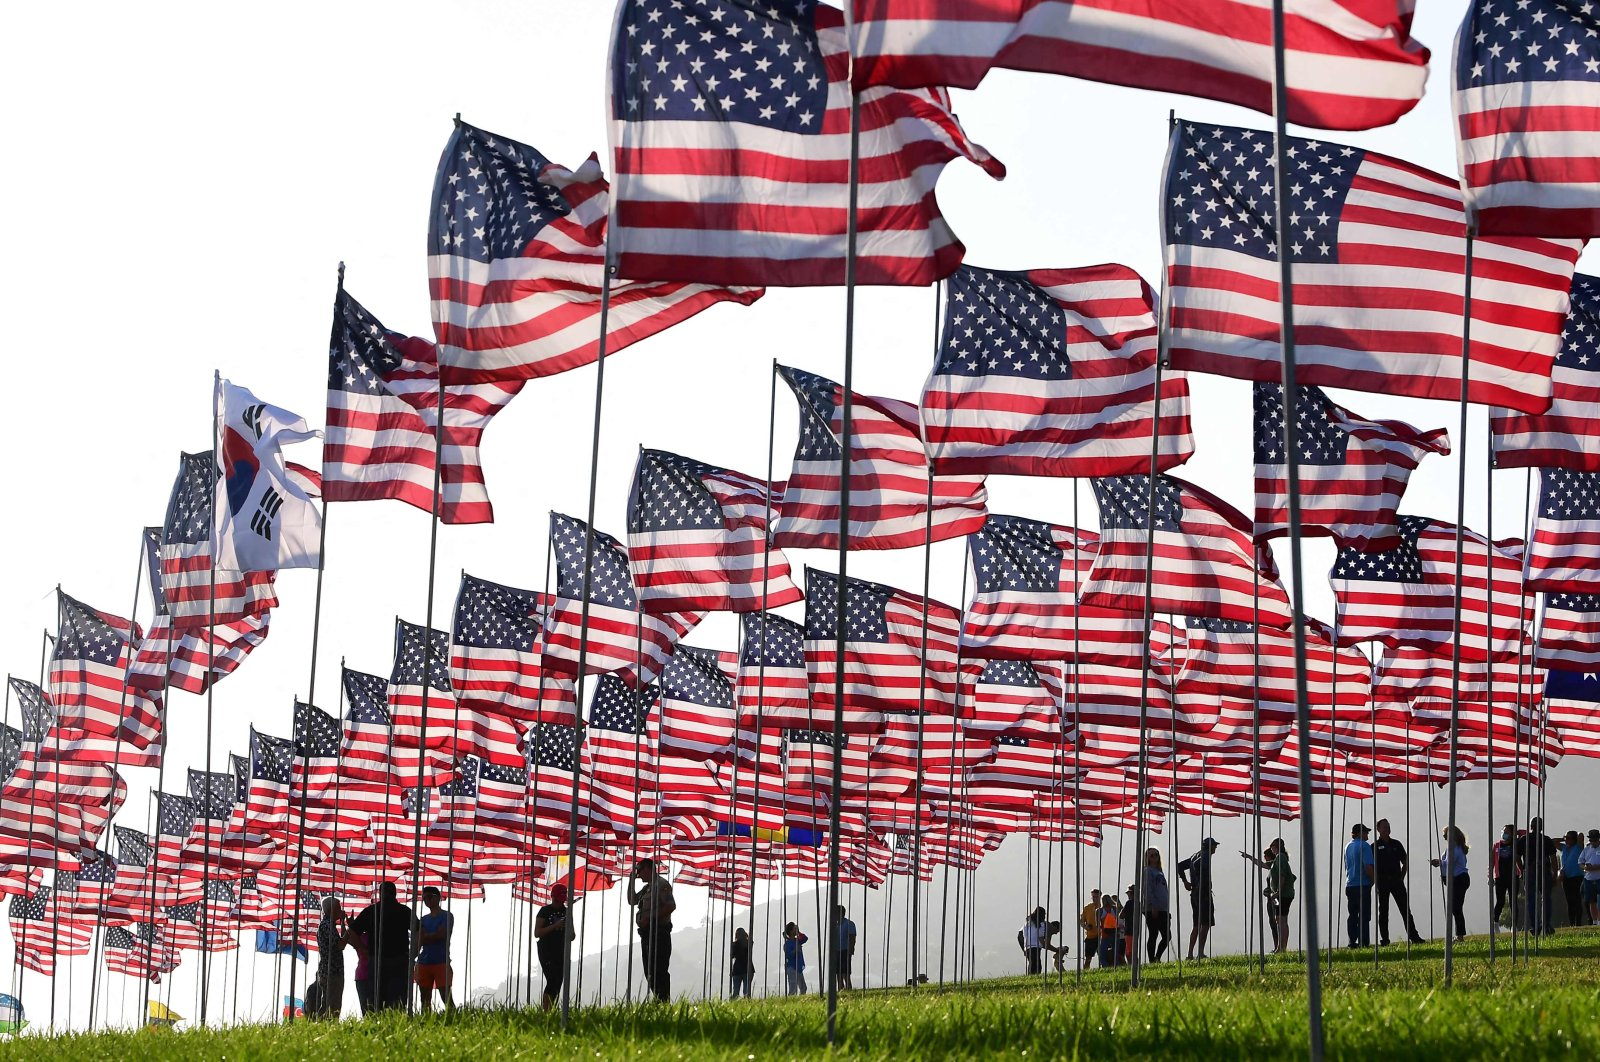 People help with the display of U.S. flags to commemorate the 20th anniversary of 9/11 with the annual Waves of Flags display and remembrance at Pepperdine University in Malibu, California, U.S., Sept. 8, 2021. (AFP Photo)